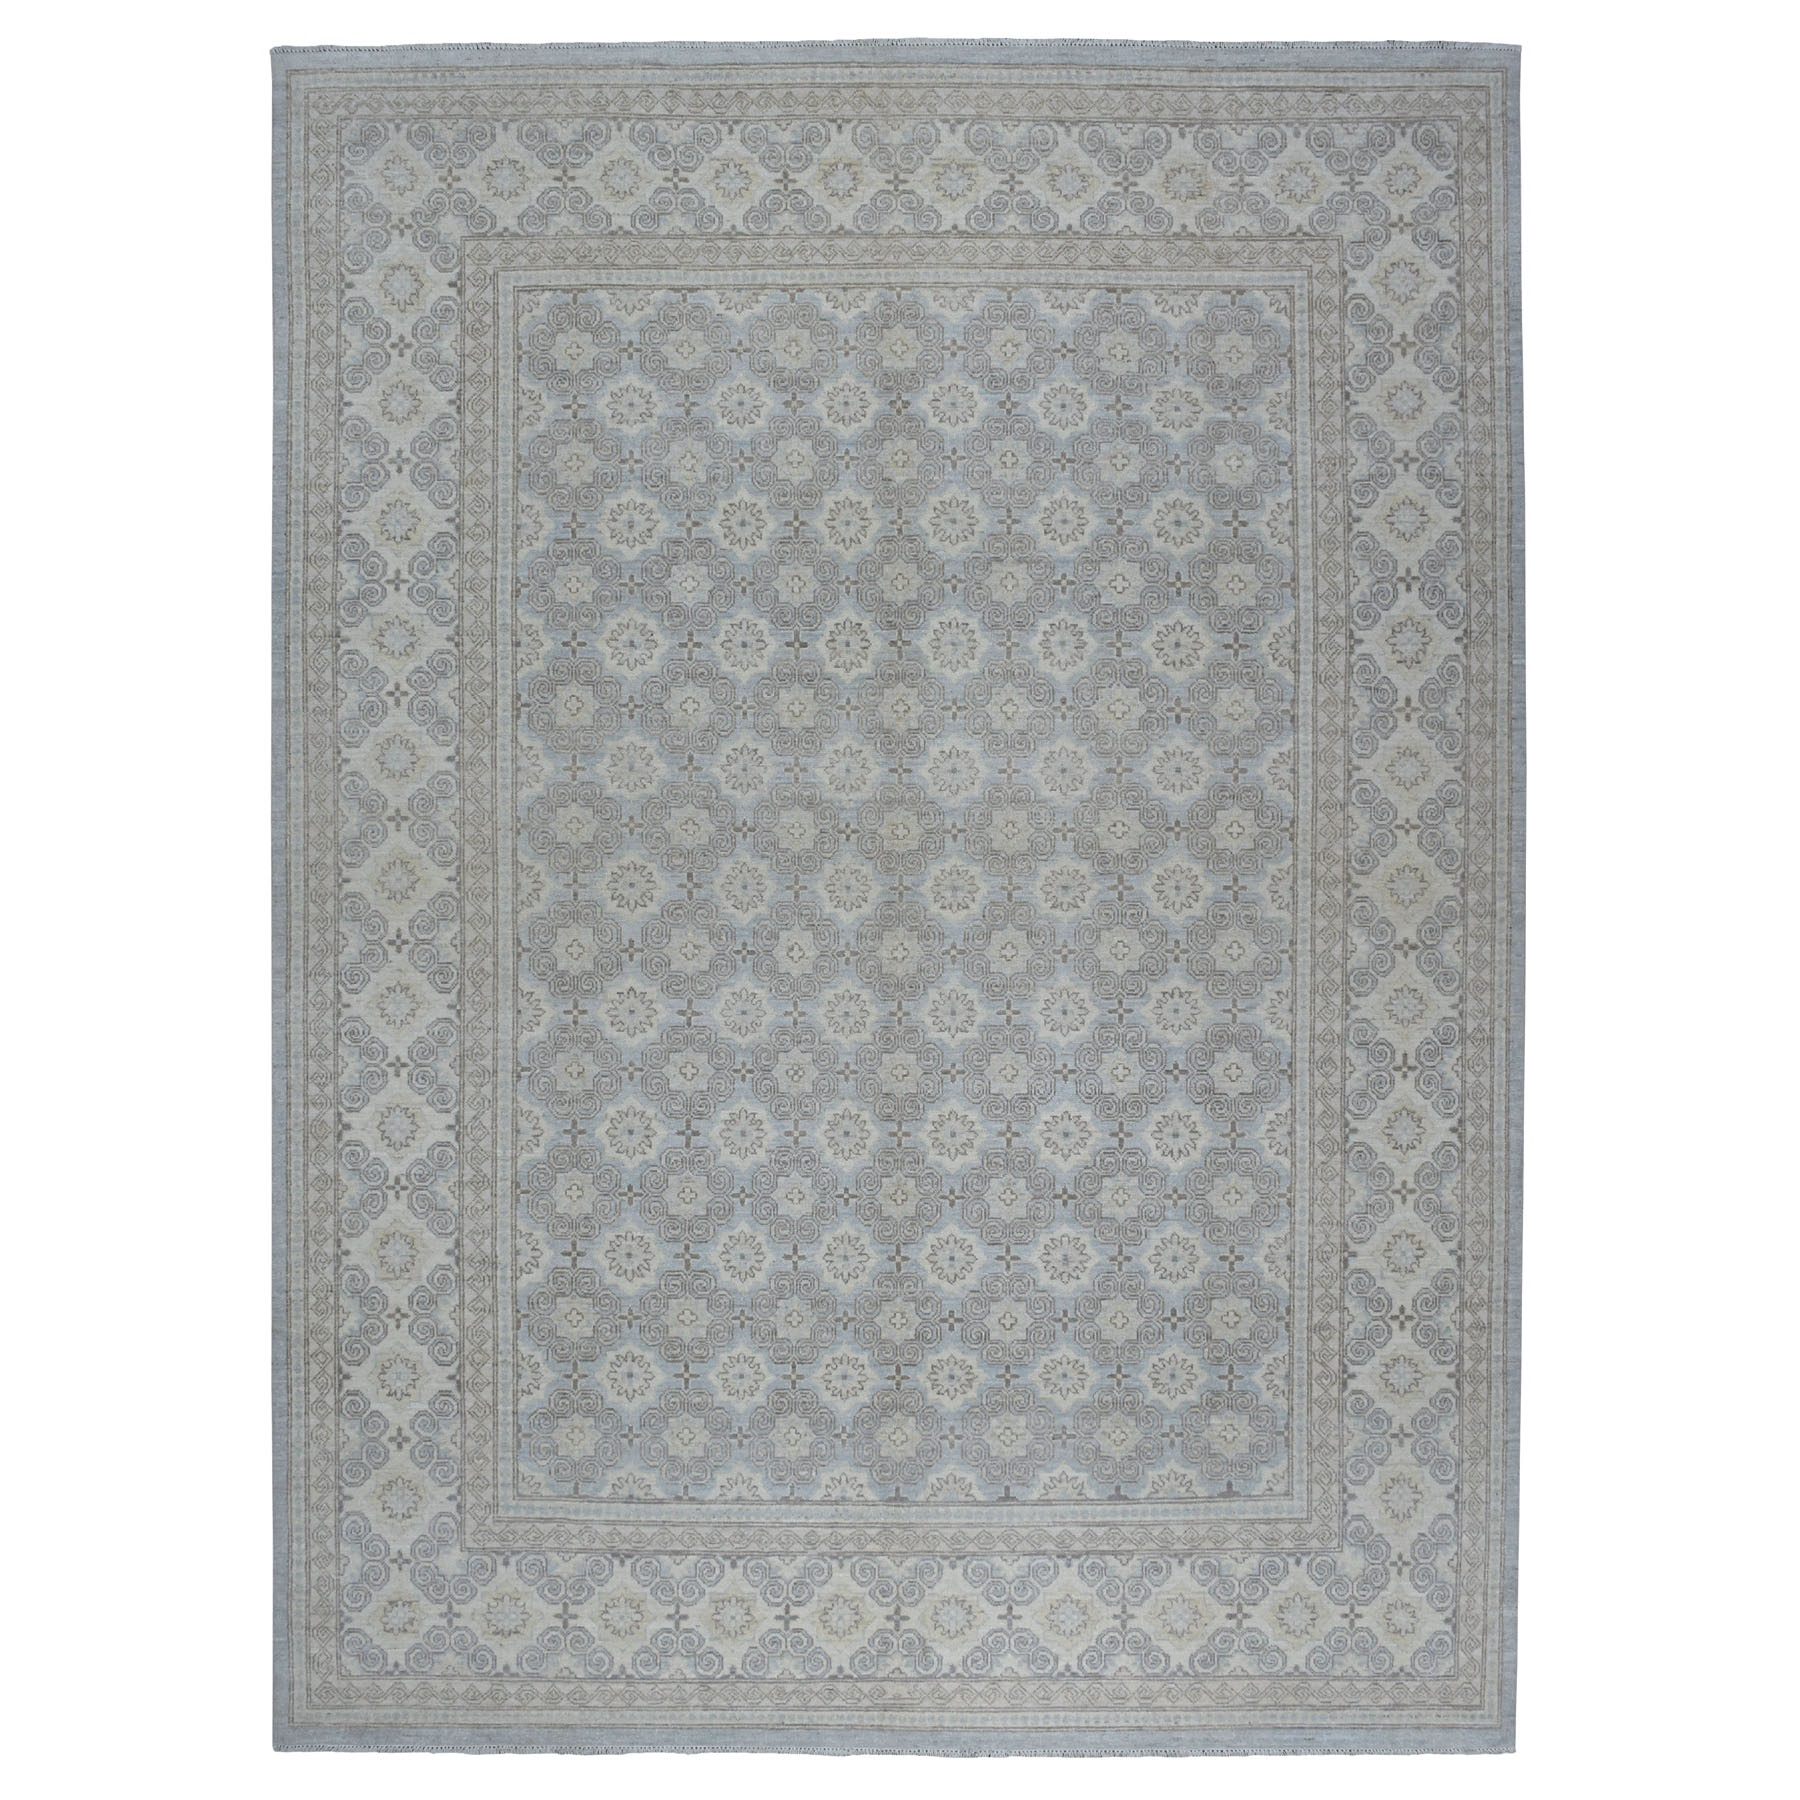 "9'x11'10"" White Wash Peshawar Khotan Repetitive Design Pure Wool Hand Knotted Oriental Rug"